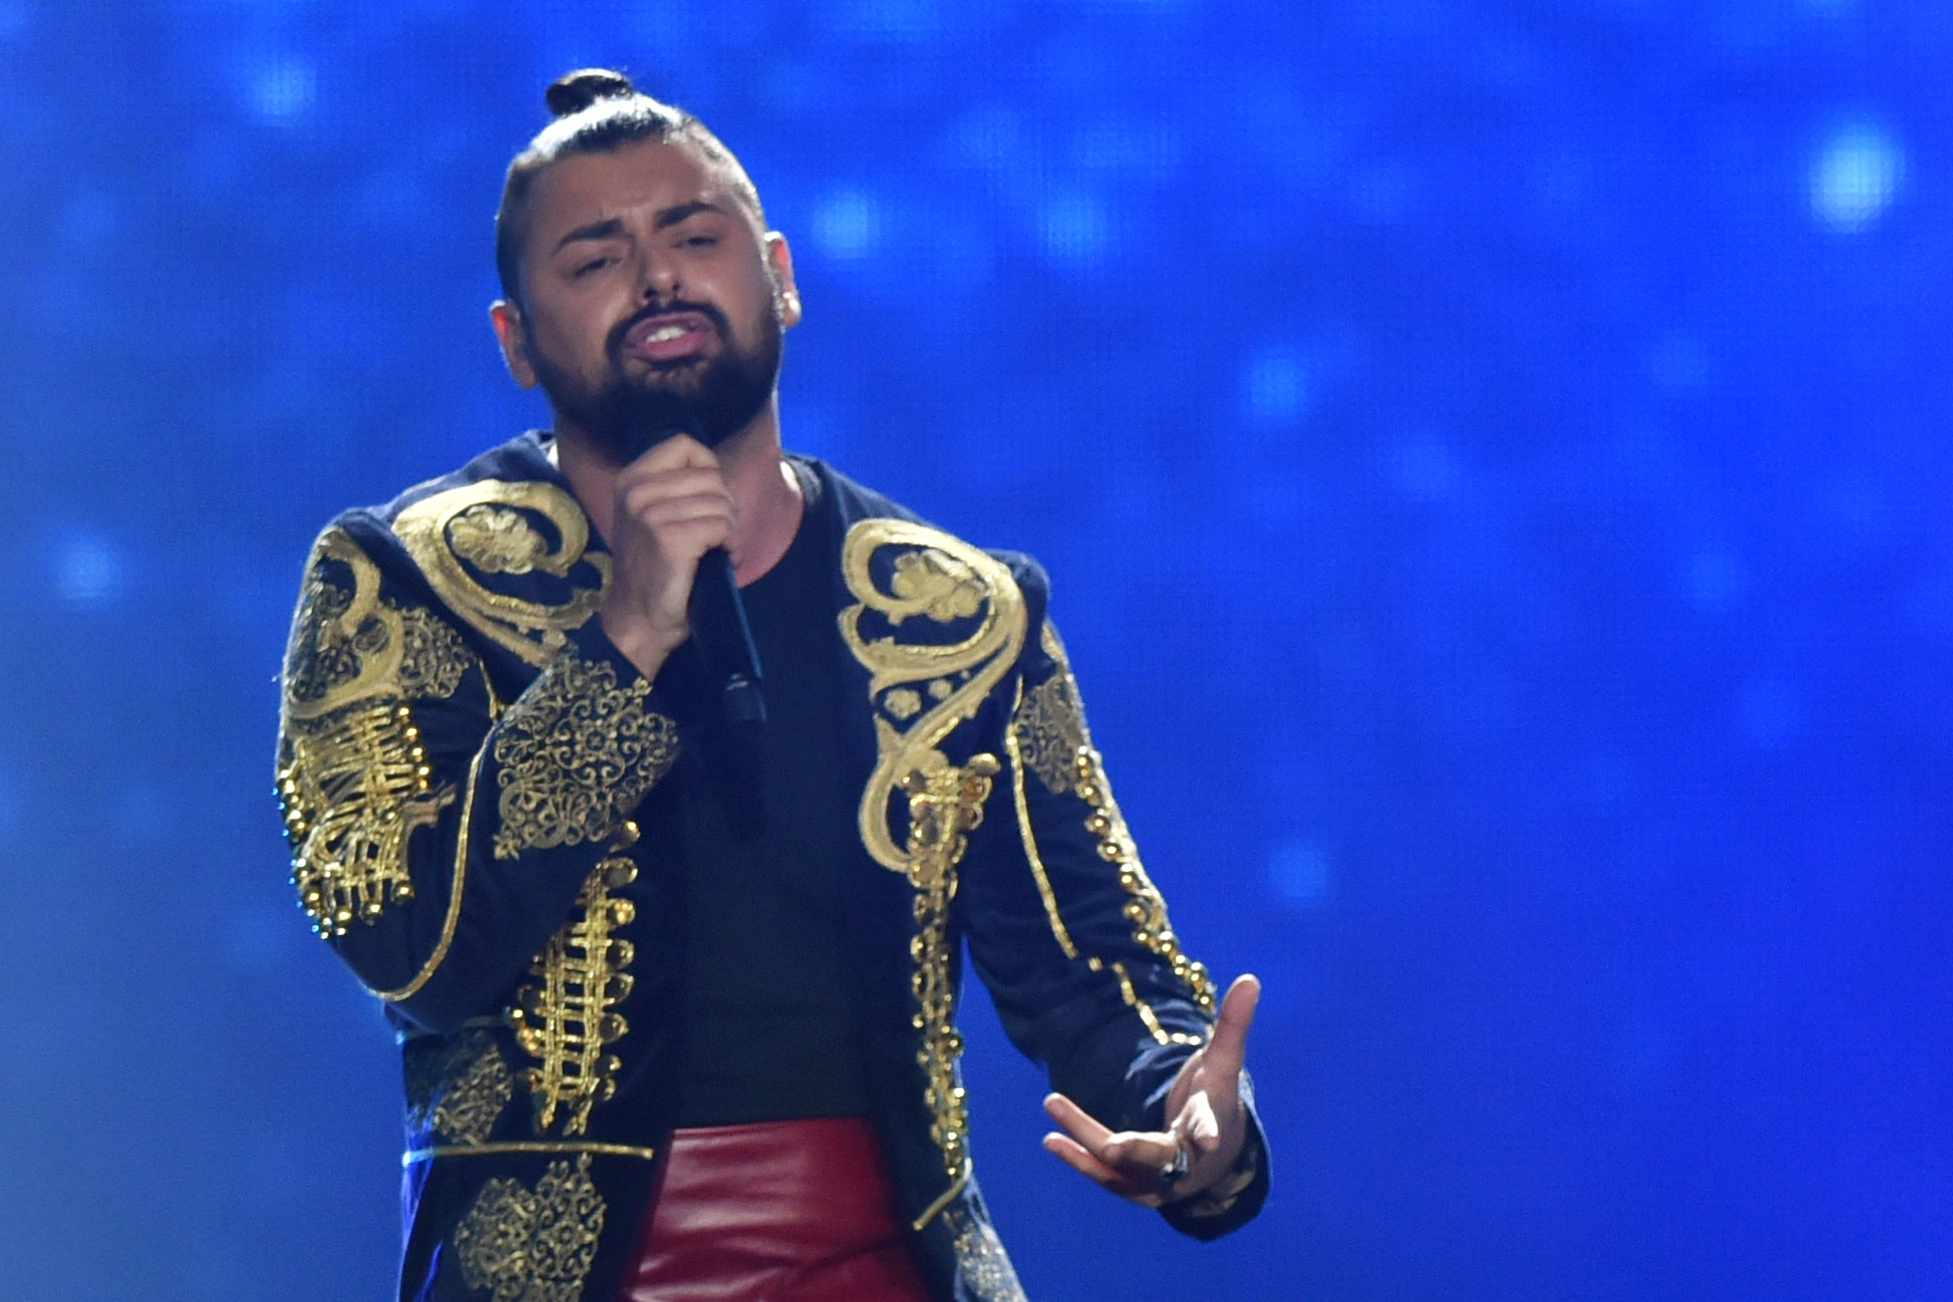 """Hungarian singer, rapper and guitarist, representing Hungary with the song """"Origo"""" Papai Jozsef aka Papai Joci performs on stage during the final of the 62nd edition of the Eurovision Song Contest 2017 Grand Final at the International Exhibition Centre in Kiev, on May 13, 2017. / AFP PHOTO / SERGEI SUPINSKY        (Photo credit should read SERGEI SUPINSKY/AFP/Getty Images)"""